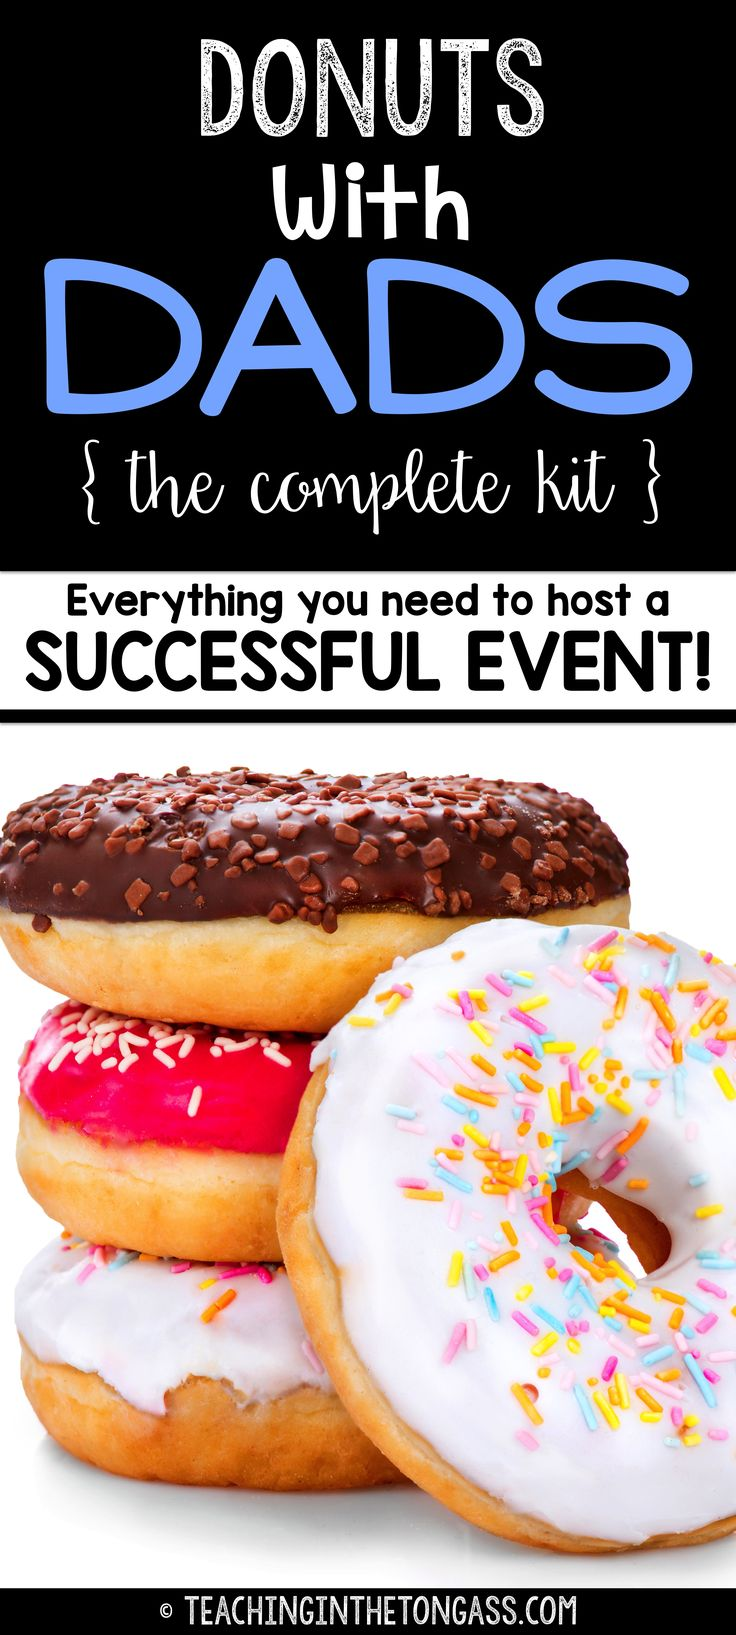 Donuts with Dads activities and more! Everything you need to host a fun-filled event for dads, uncles, grandpas, etc. Perfect for Father's Day or any time of year!